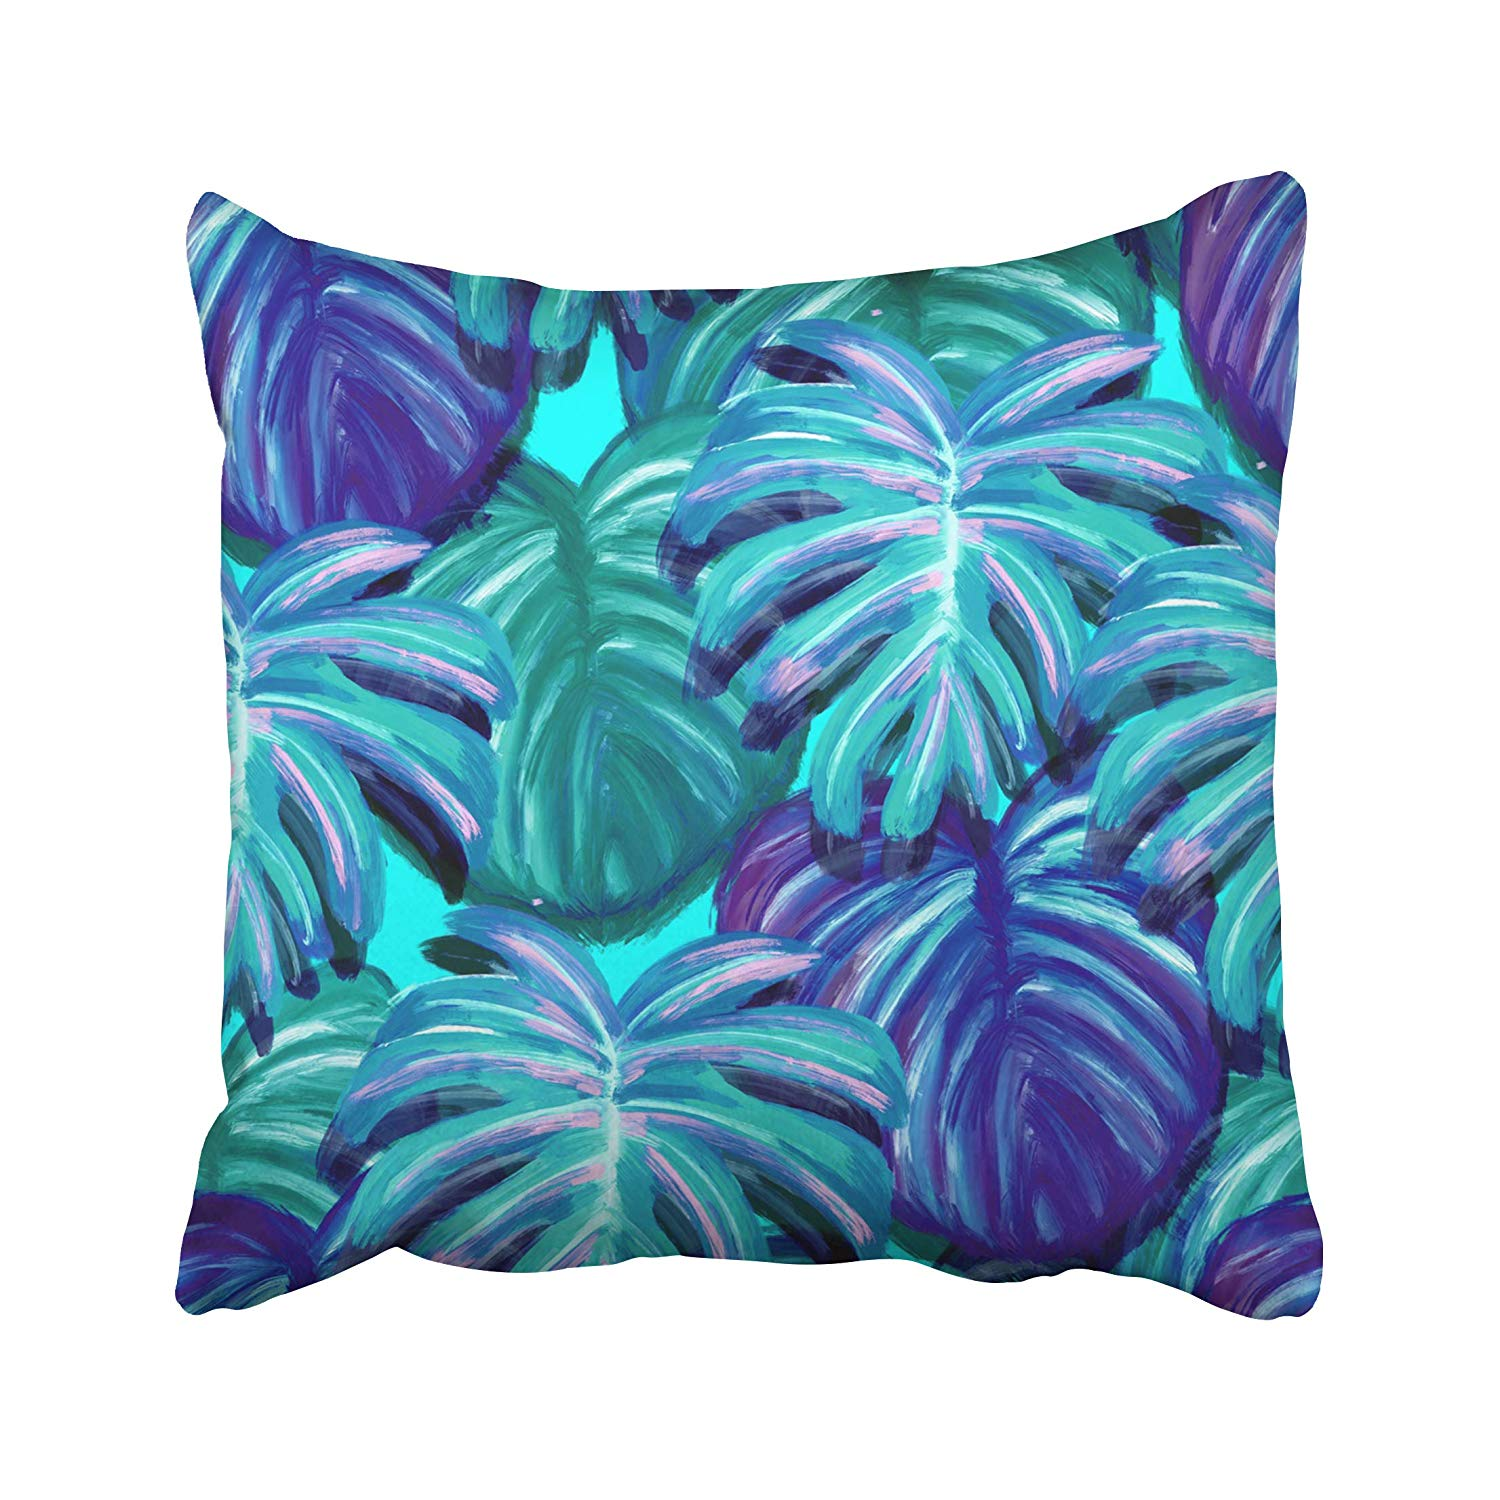 ARHOME Teal Tropical Leaf Design Featuring Green Blue Sketch Palm and  Monstera Plant Leaves Pillow Case Pillow Cover 20x20 inch Throw Pillow  Covers